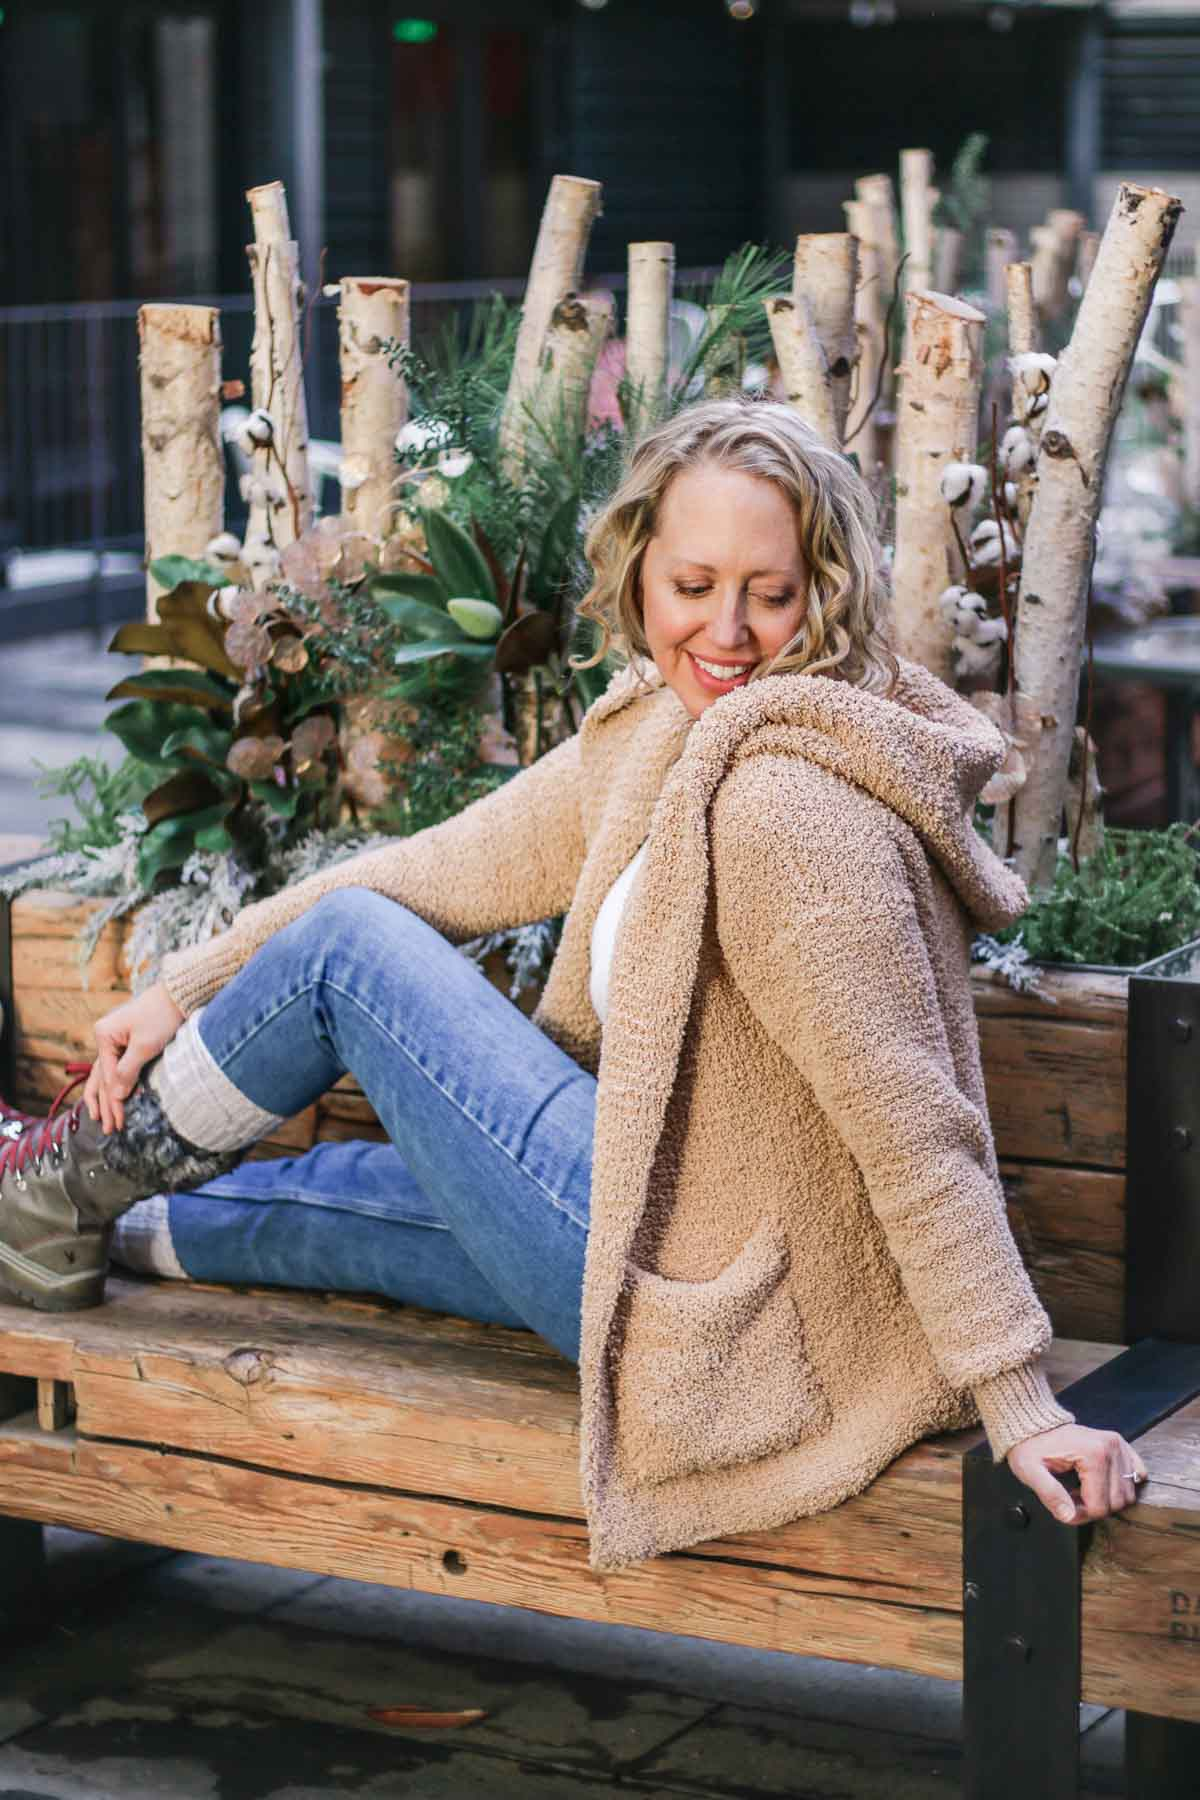 A woman sitting on a bench wearing a crochet sherpa sweater jacket with beautiful crochet sl st ribbing that looks knit.